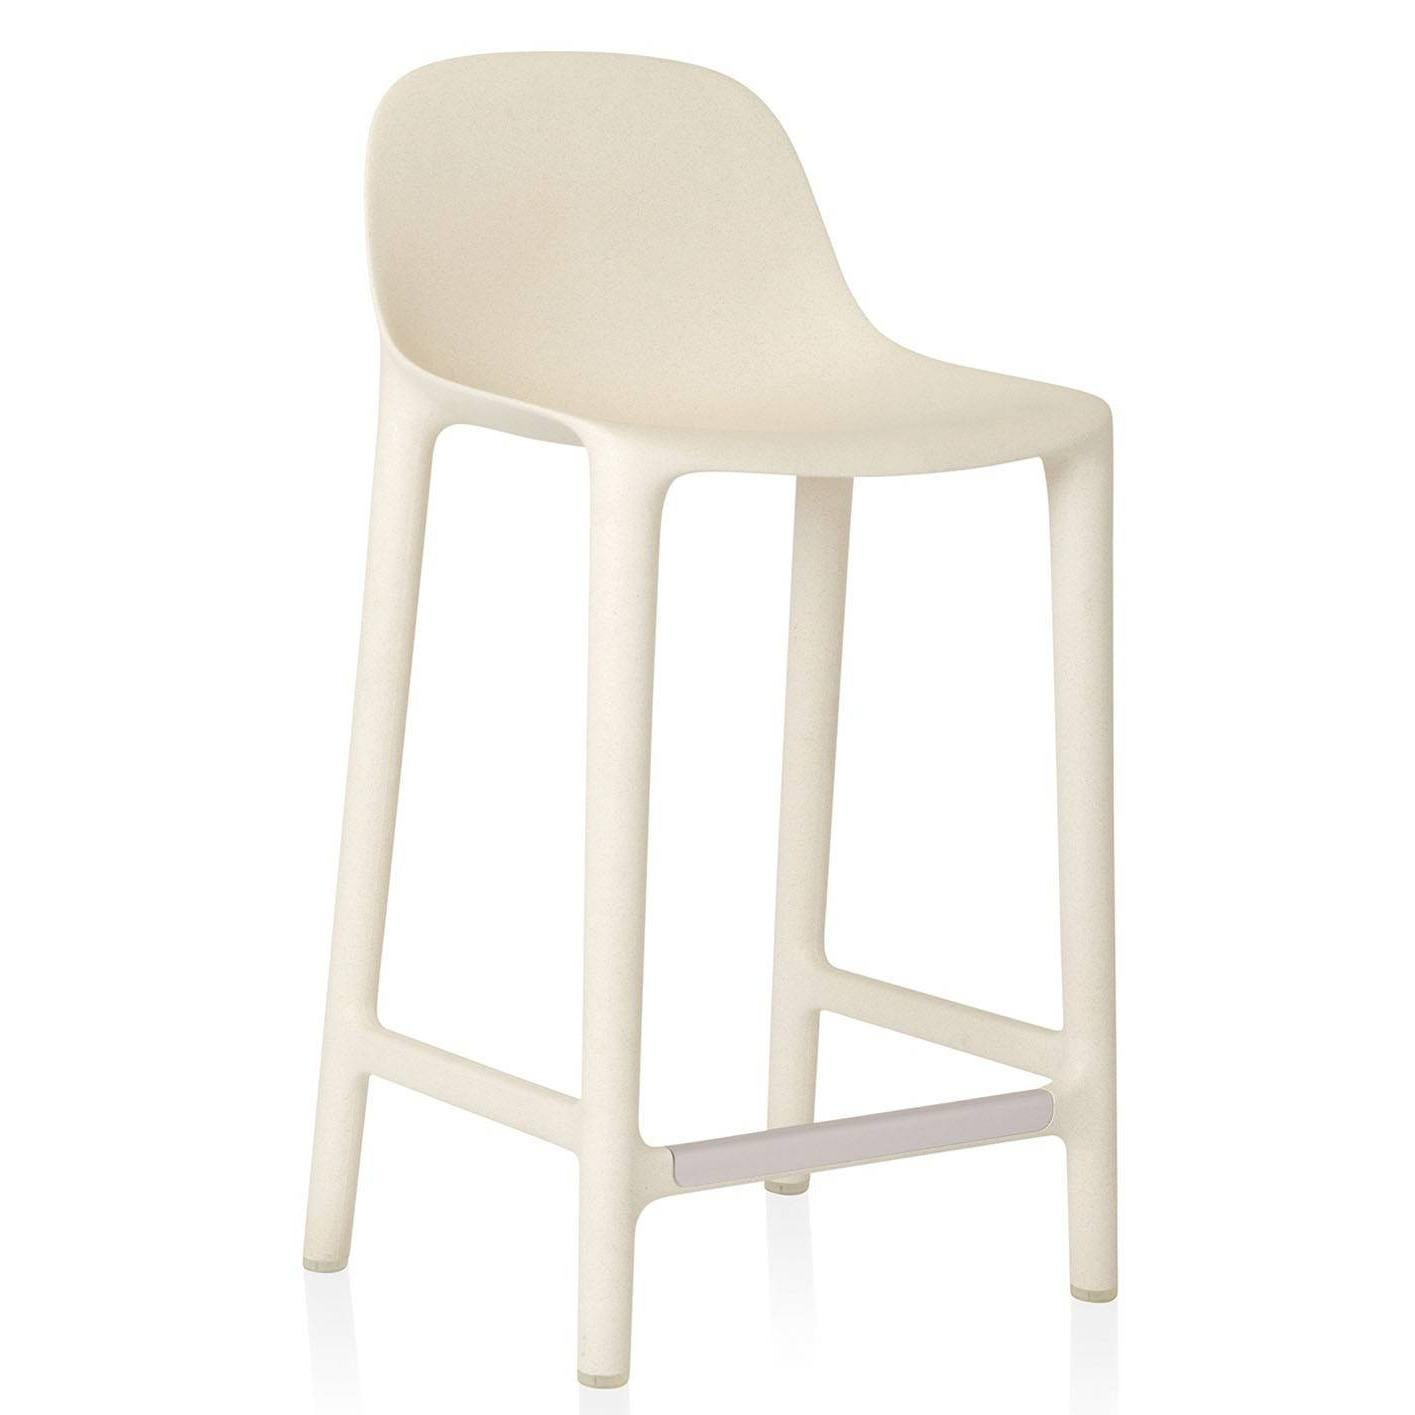 Emeco Broom Counter Stool Gr Shop Canada